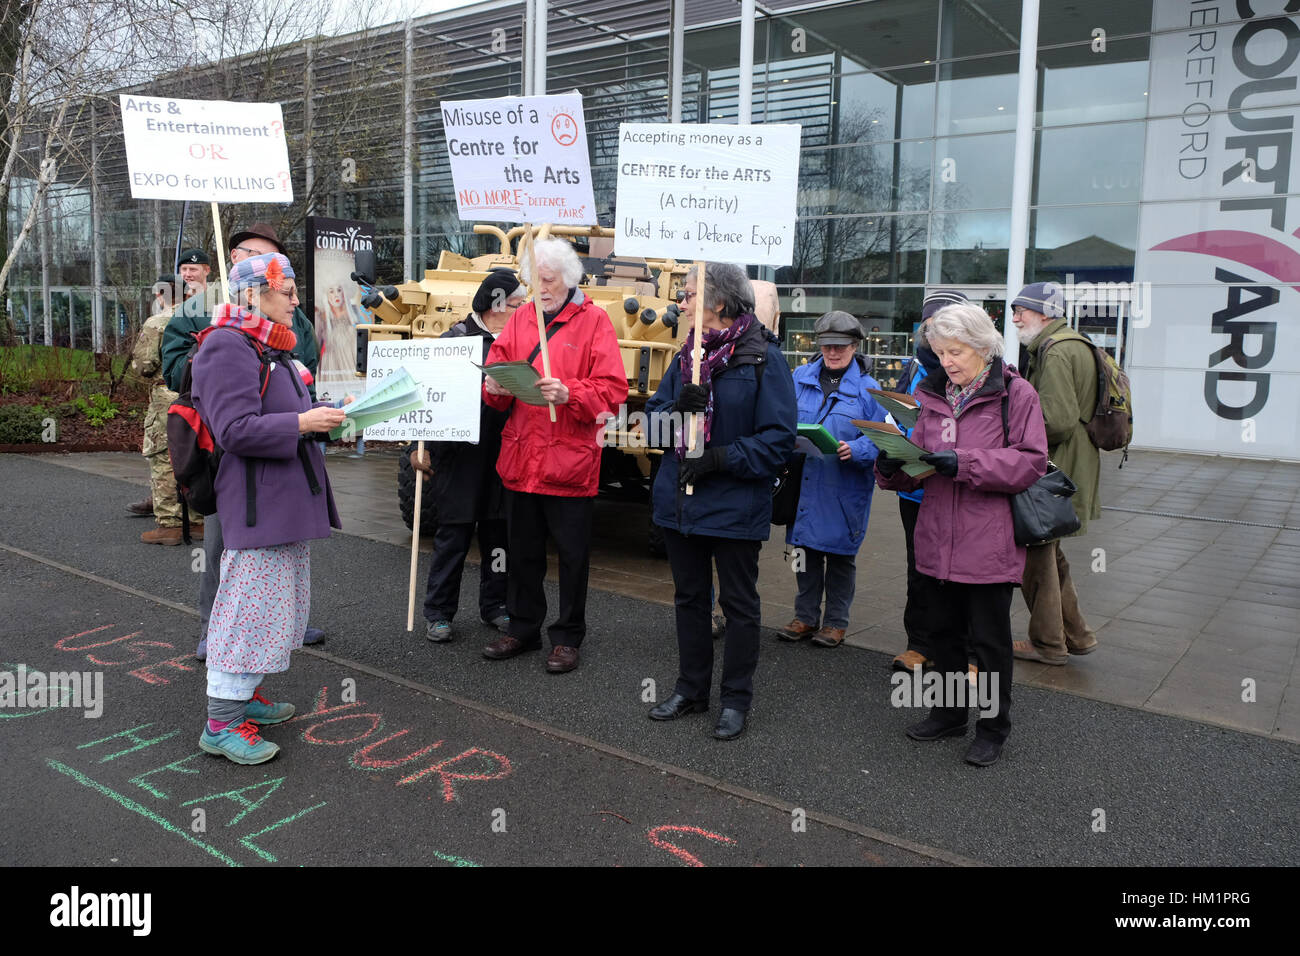 Hereford, UK. 1st February 2017. Protesters demonstrate outside the Herefordshire Defence and Security Expo ( HDSE Stock Photo